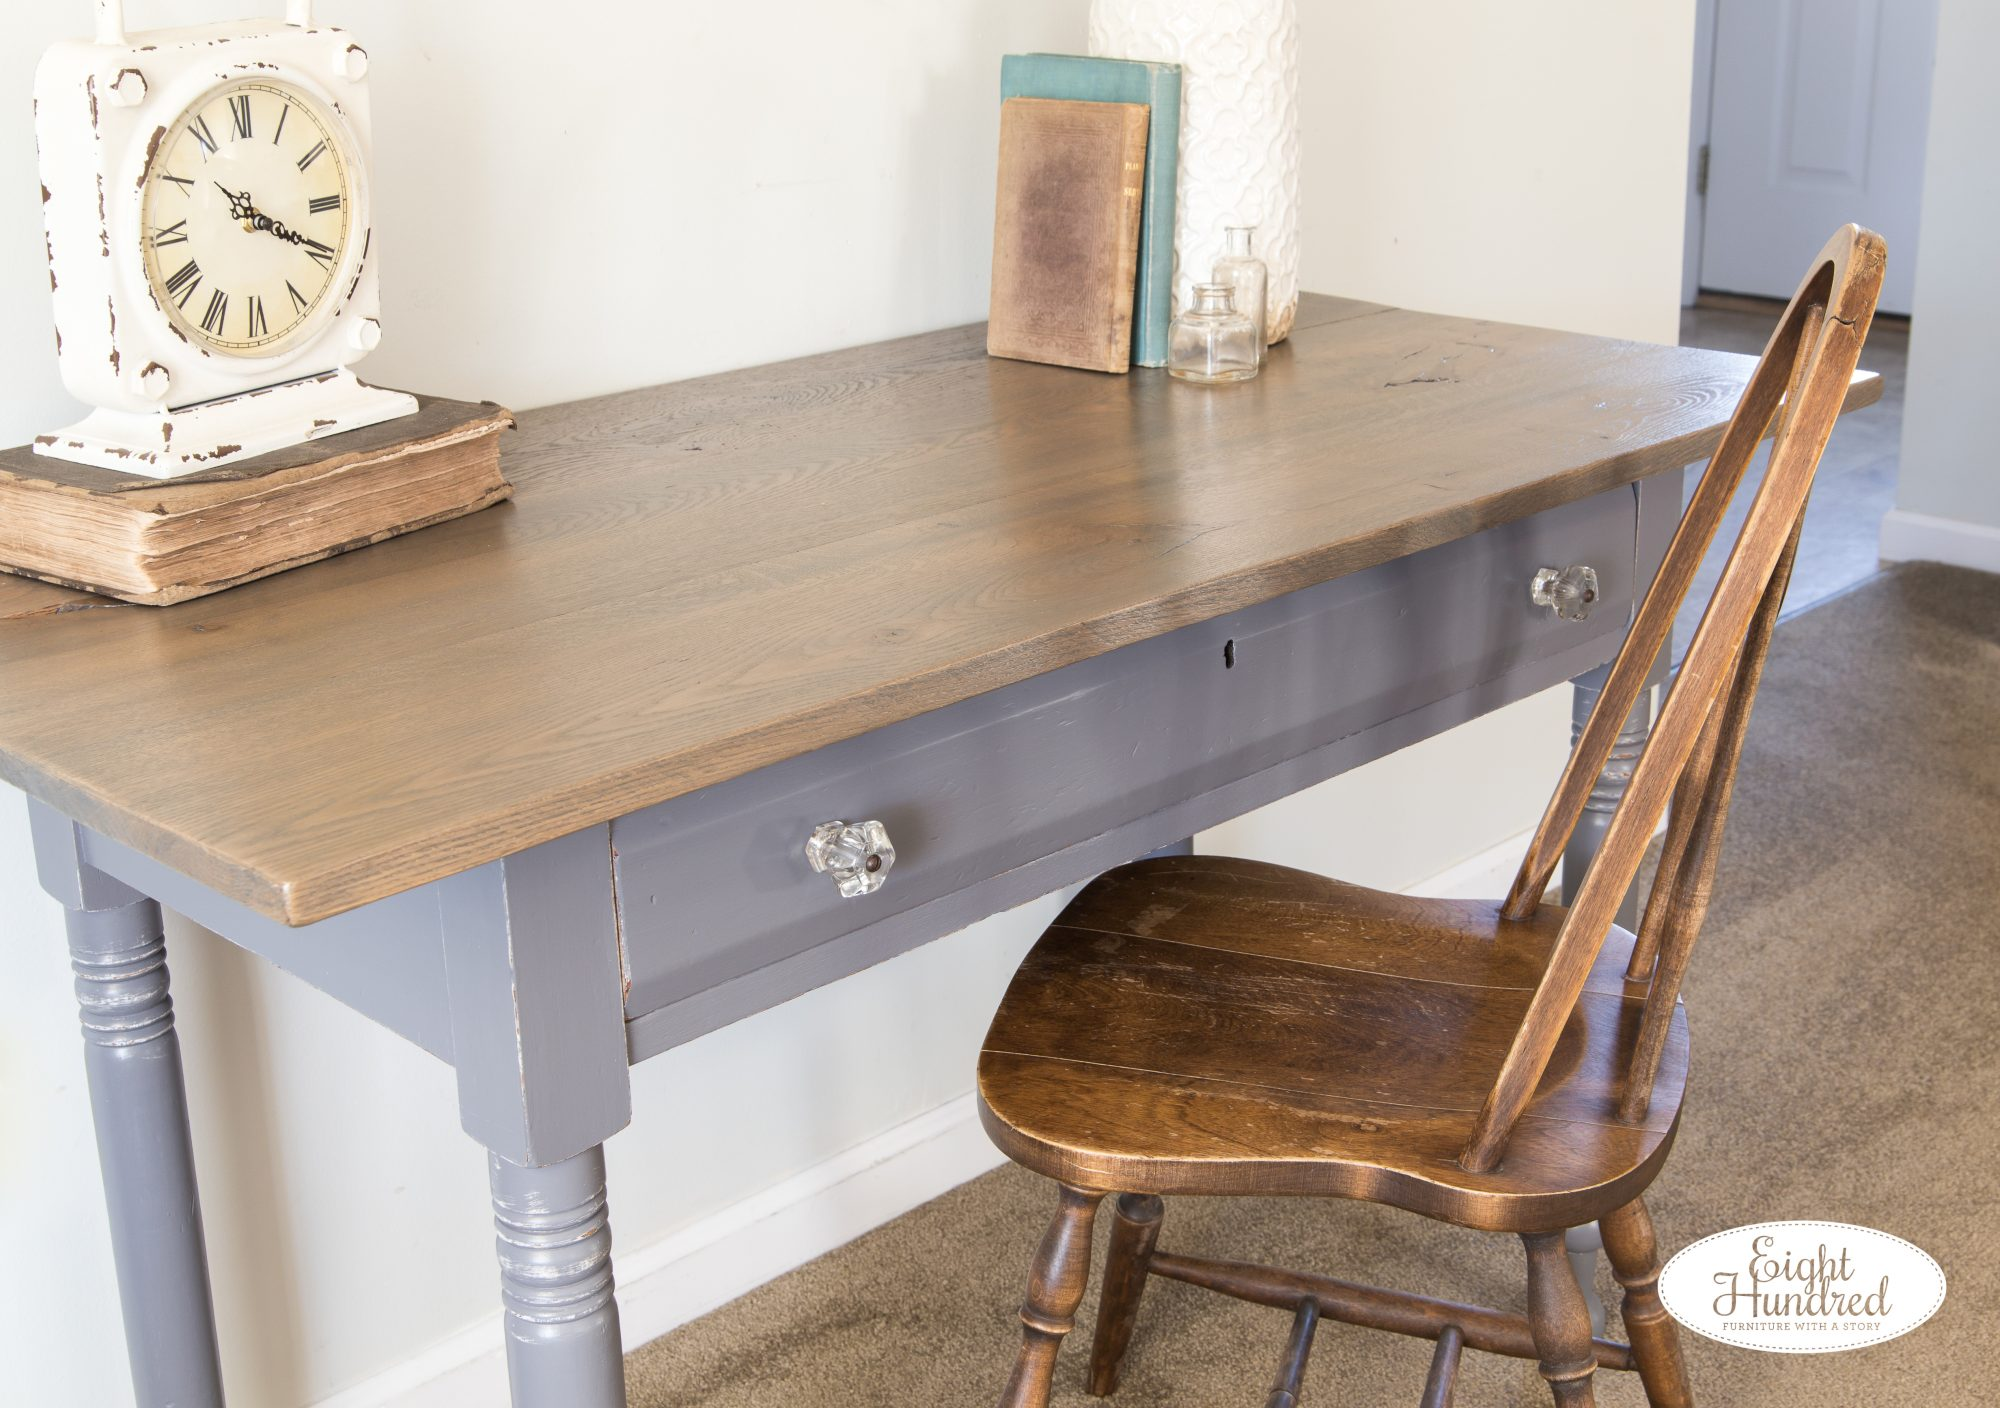 Antique table painted in Driftwood Milk Paint by General Finishes with a Reclaimed Oak Top stained in Graystone Water Based Wood Stain